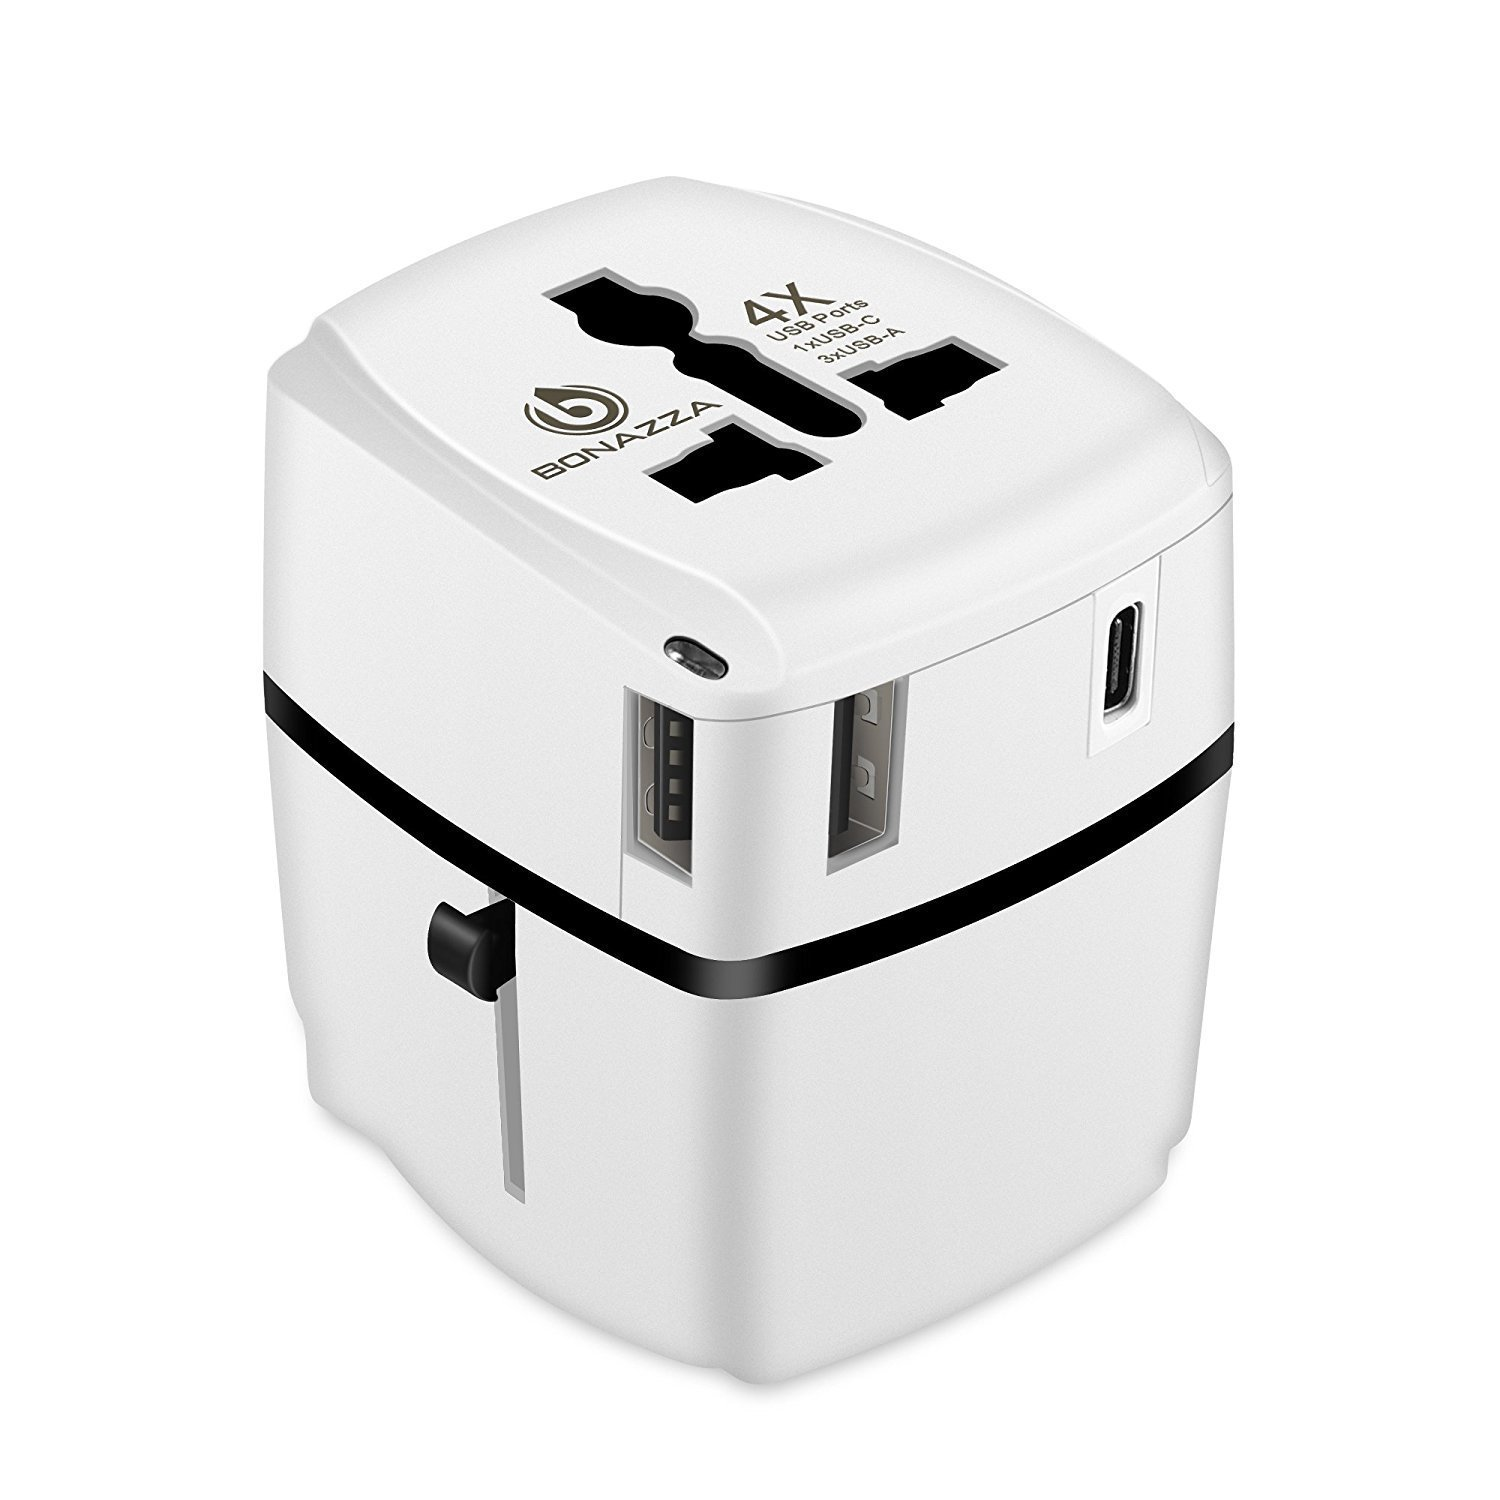 [UL Test Passed] BONAZZA Universal World Travel Adapter w/4 Fast Charging USB Port (3 USB A +1 USB C) International Plugs Adaptor for US, AU, Asia, Europe, UK Compatible Over 150 Countrie